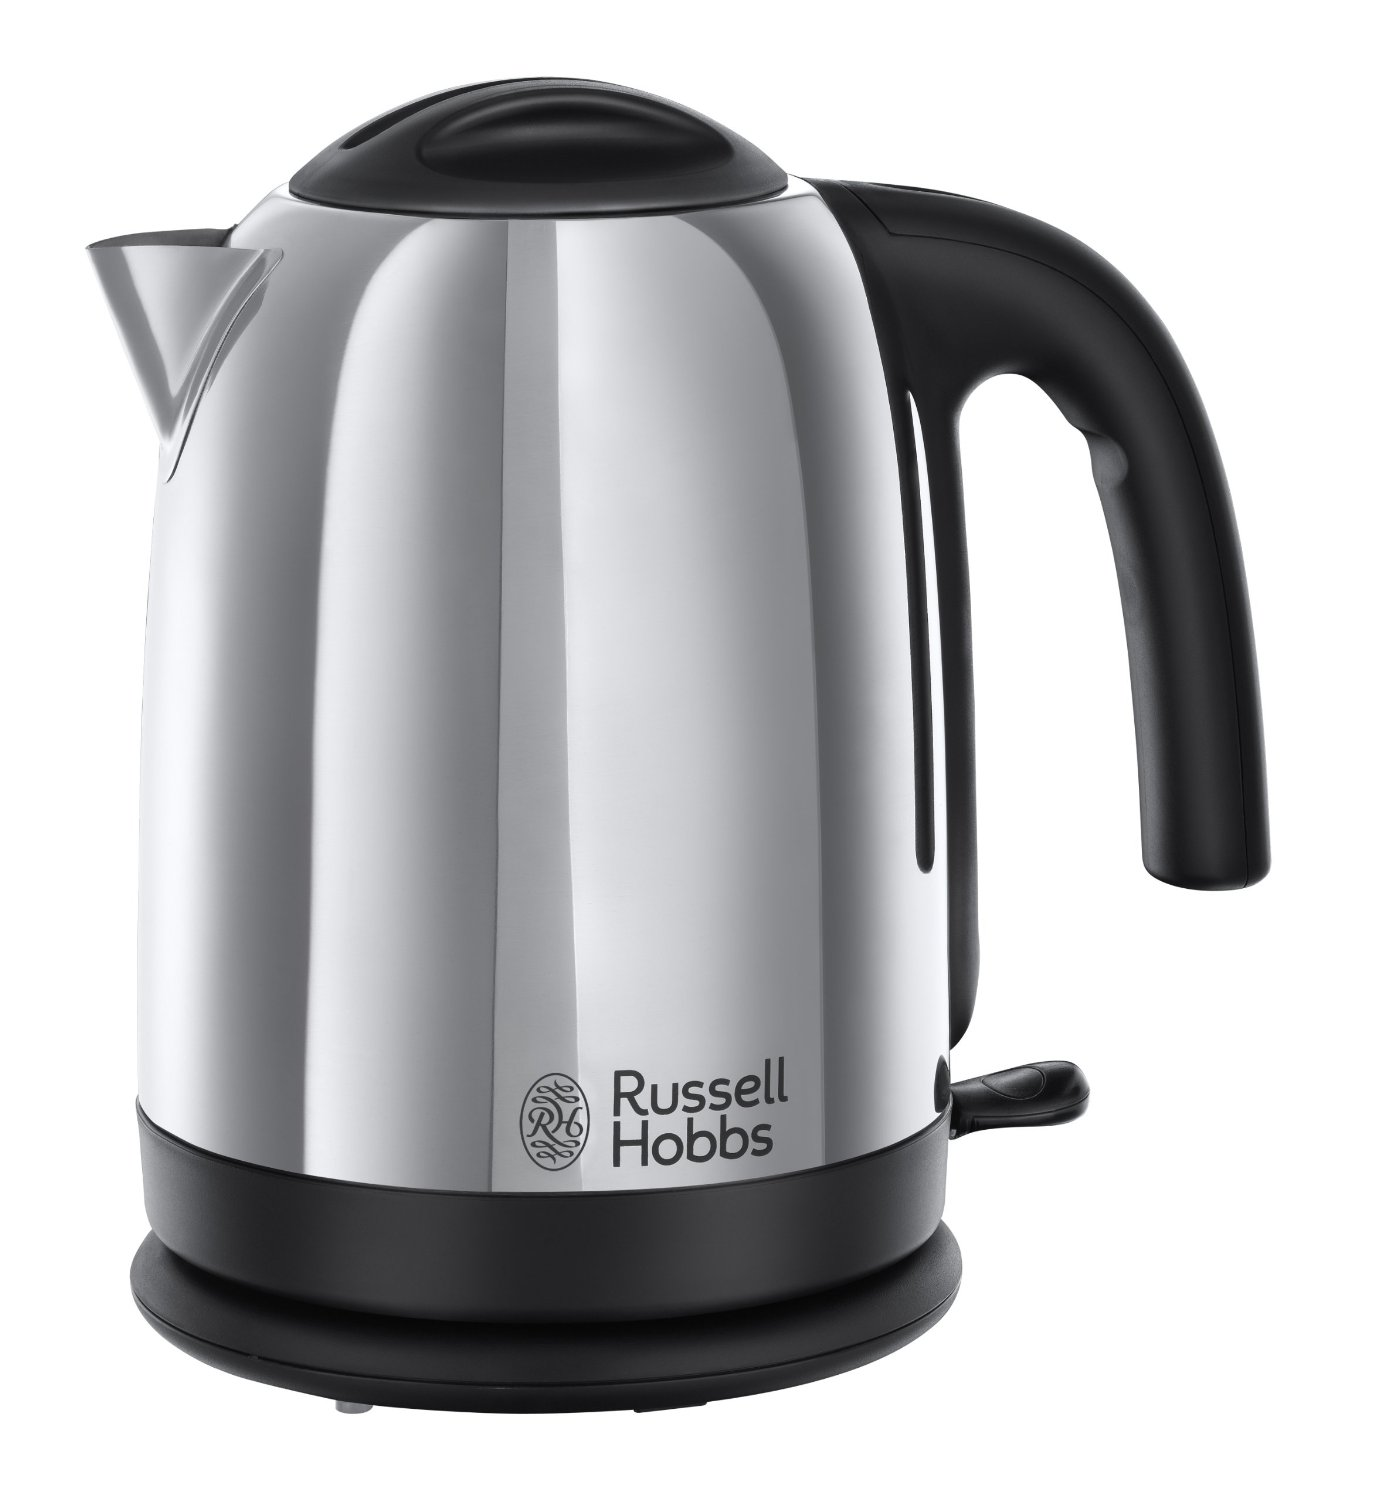 russell hobbs 20071 cambridge poliertem edelstahl 1 7l. Black Bedroom Furniture Sets. Home Design Ideas